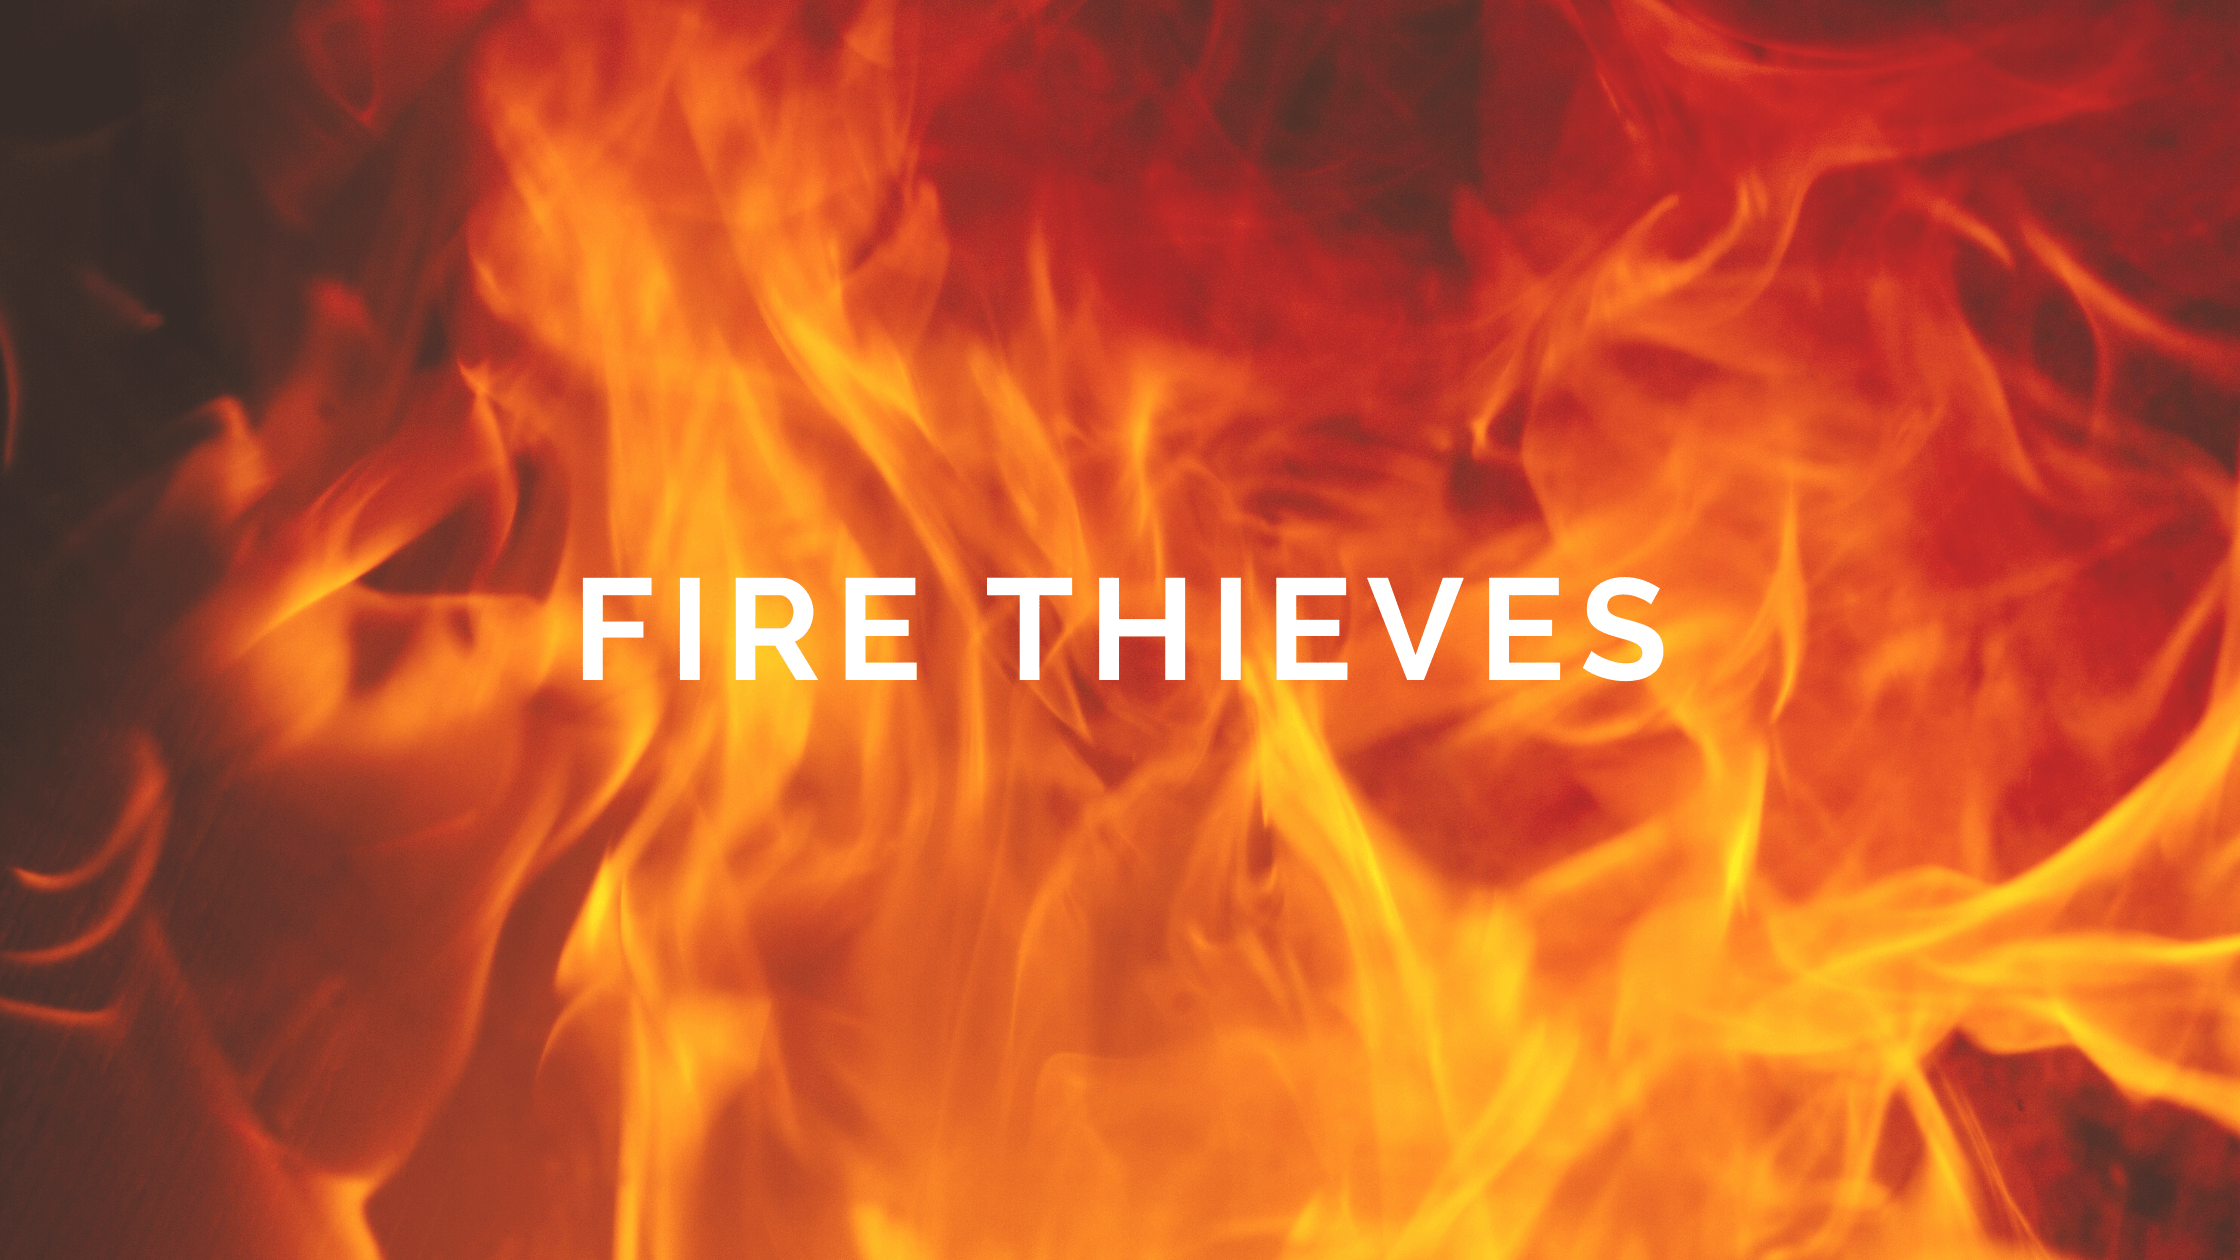 FIRE THIEVES